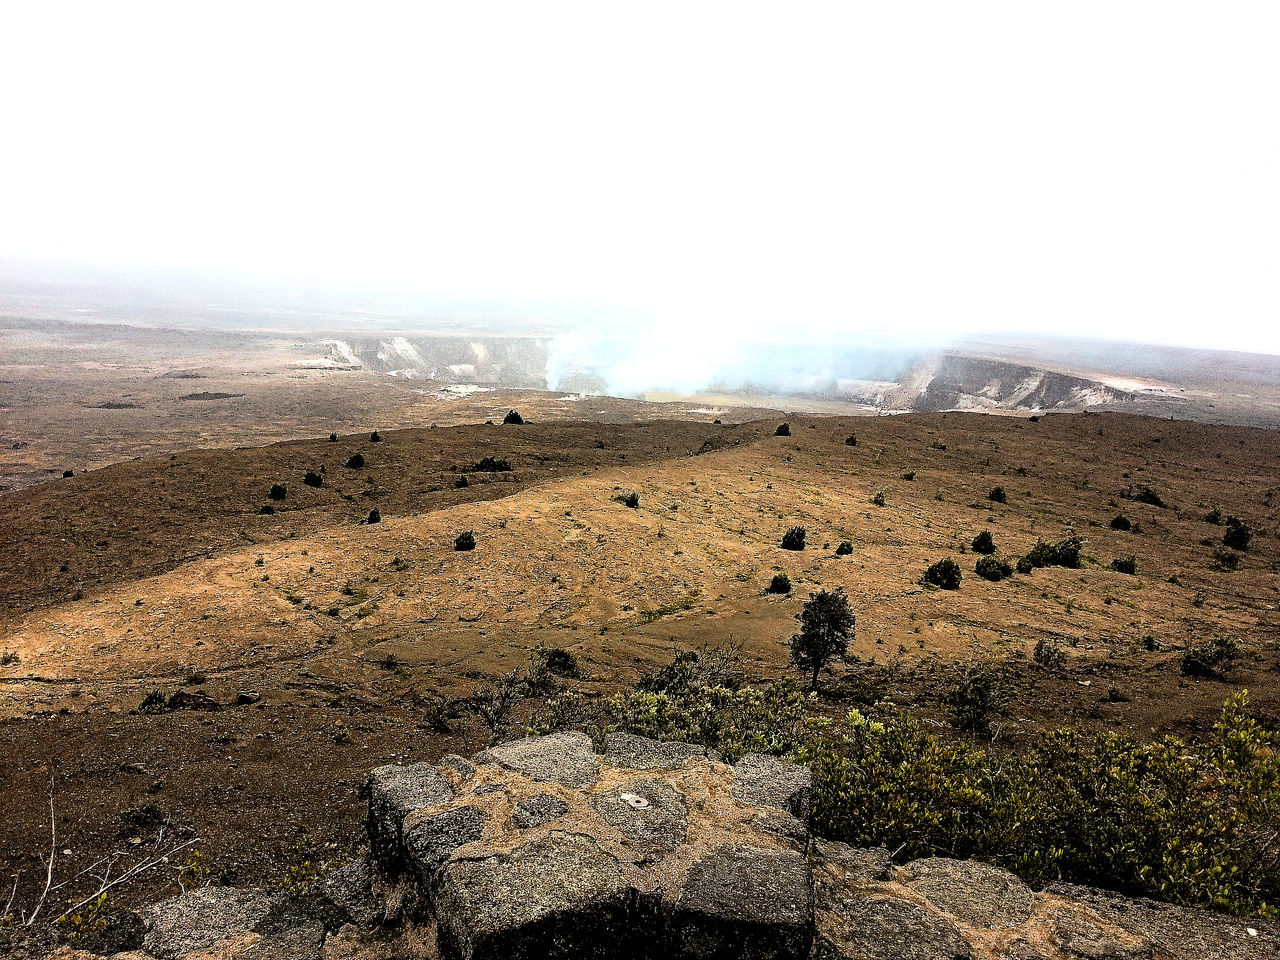 landscape, nature, beauty in nature, outdoors, day, no people, tranquil scene, scenics, volcanic landscape, sky, desert, mountain